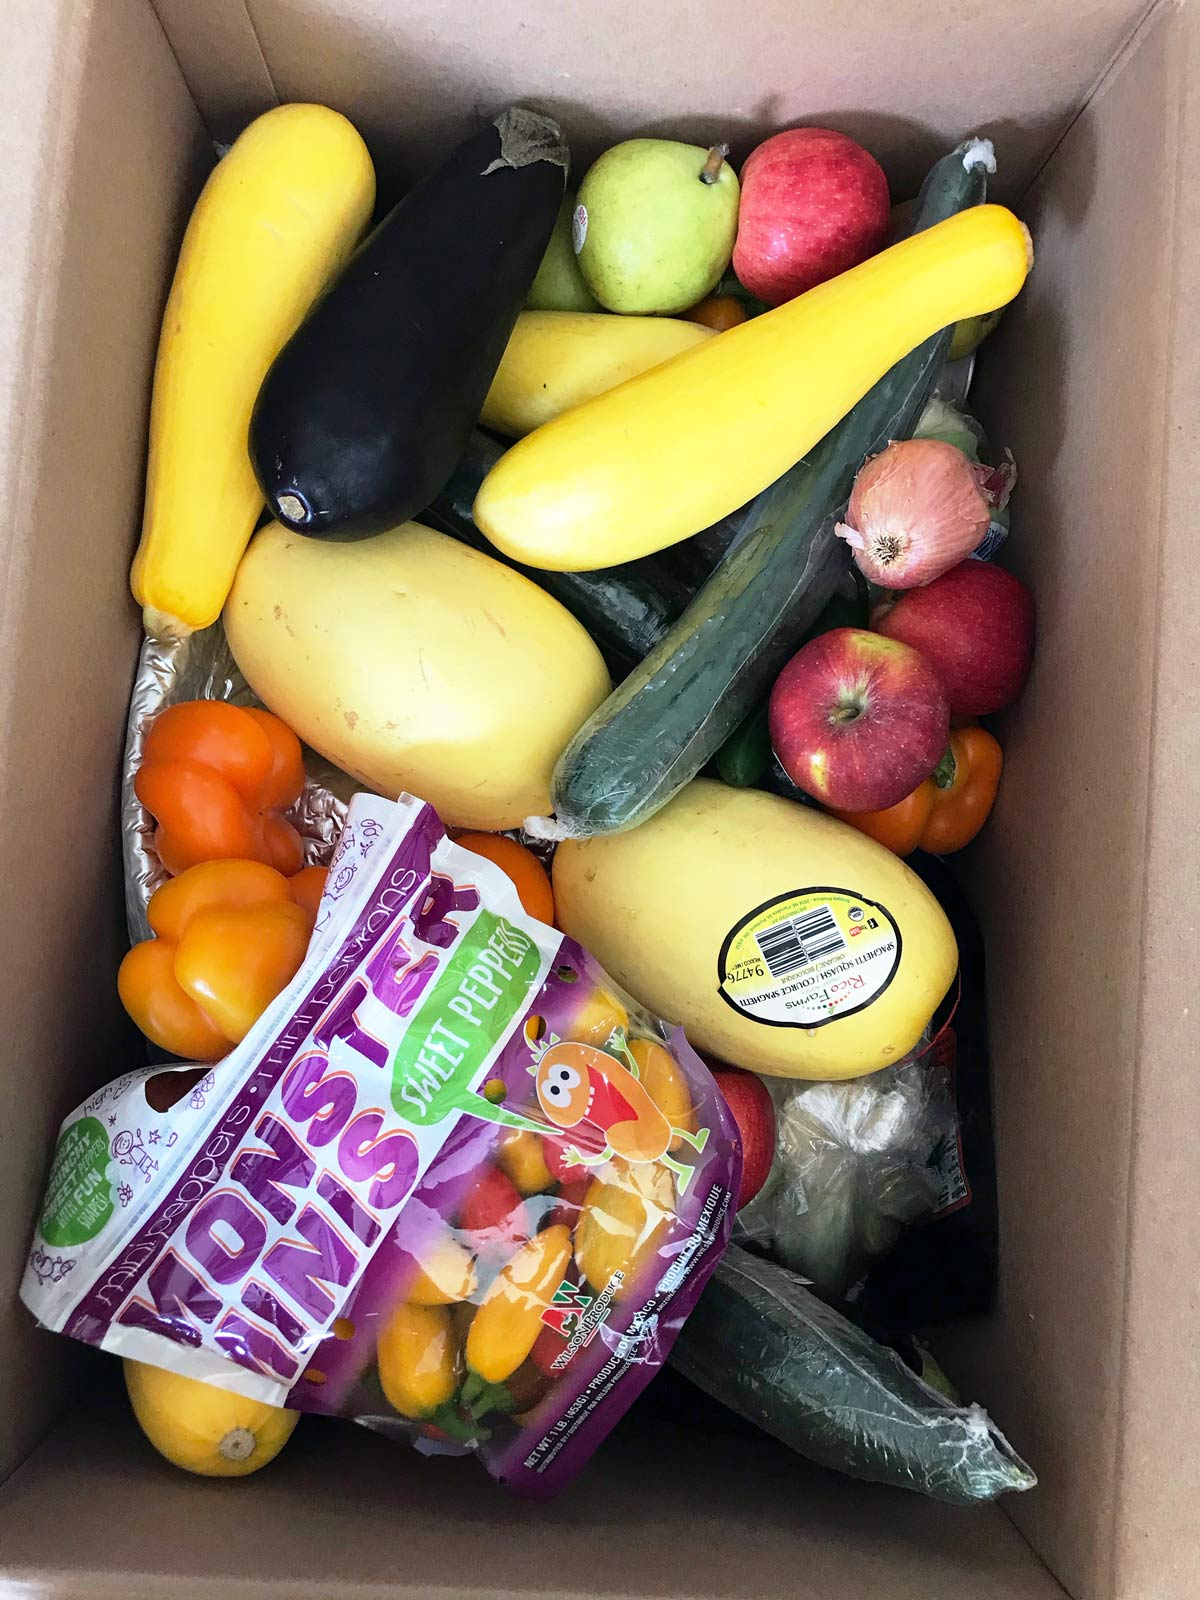 cardboard box full of a mix of fruits and vegetables.